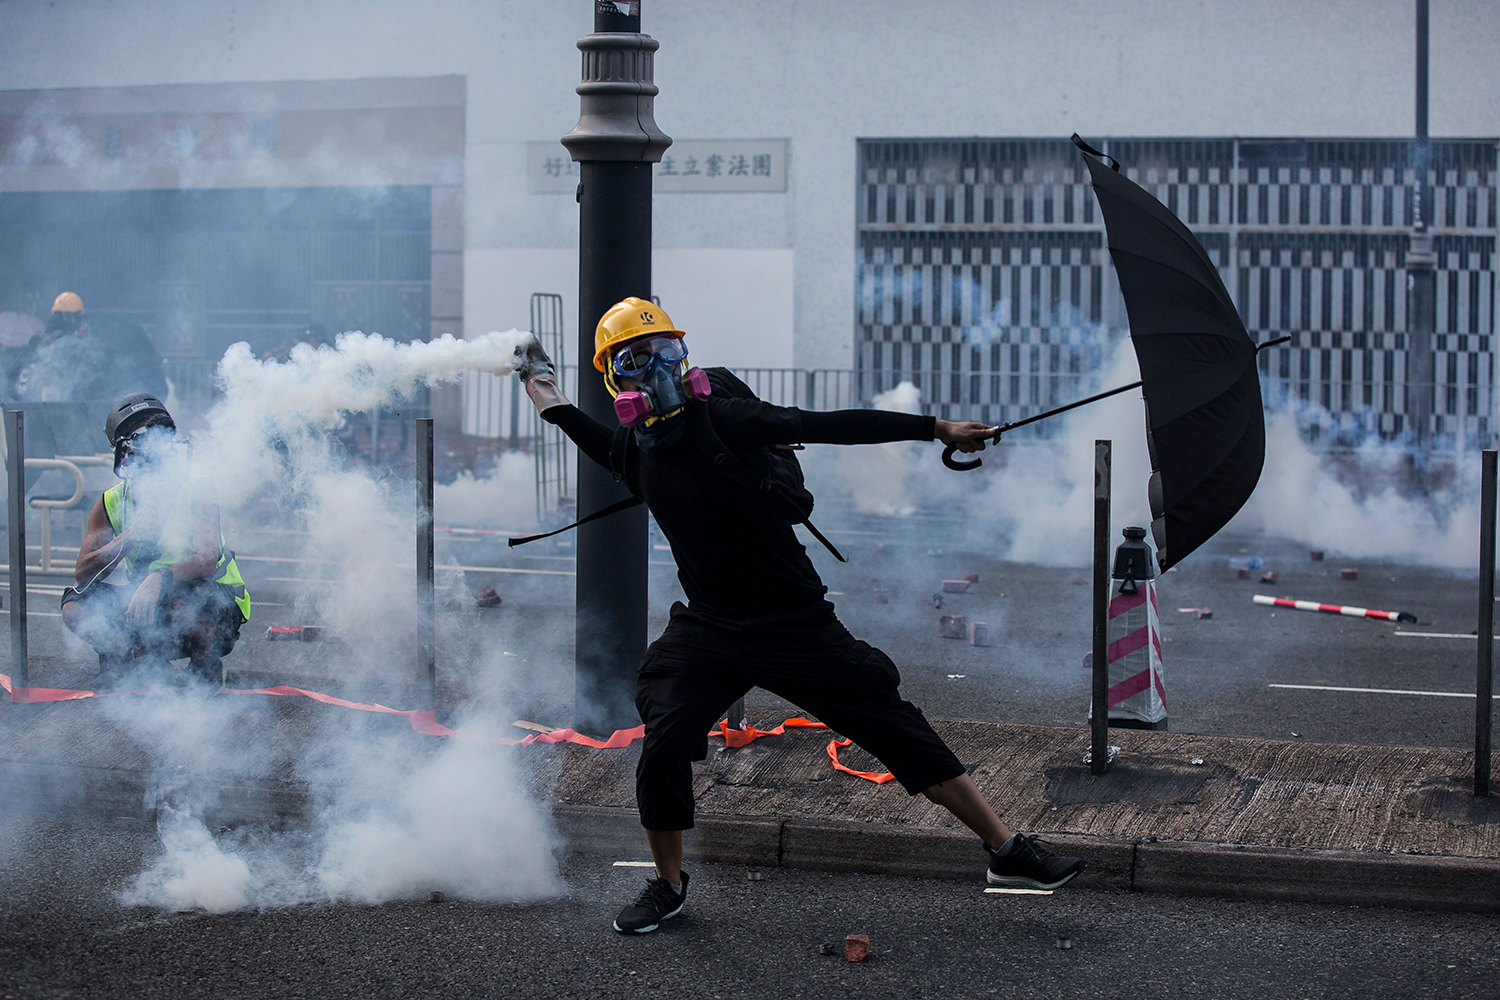 HONG KONG | A protester throws a tear gas canister fired by police in the Sha Tin district of Hong Kong on Oct. 1. ISAAC LAWRENCE/AFP/Getty Images